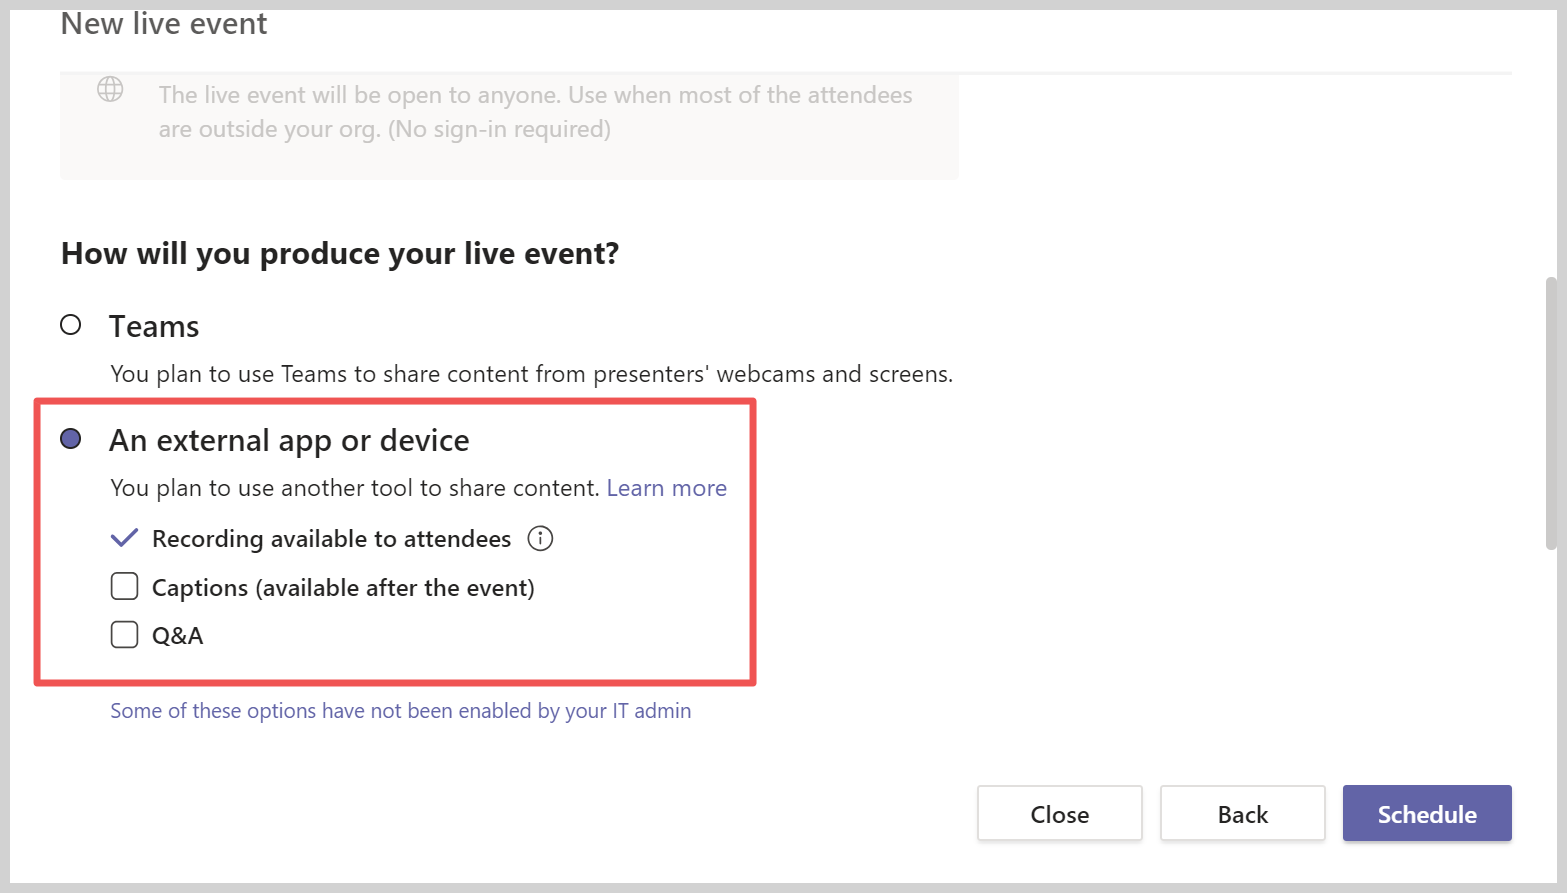 Adding an external device to produce the event